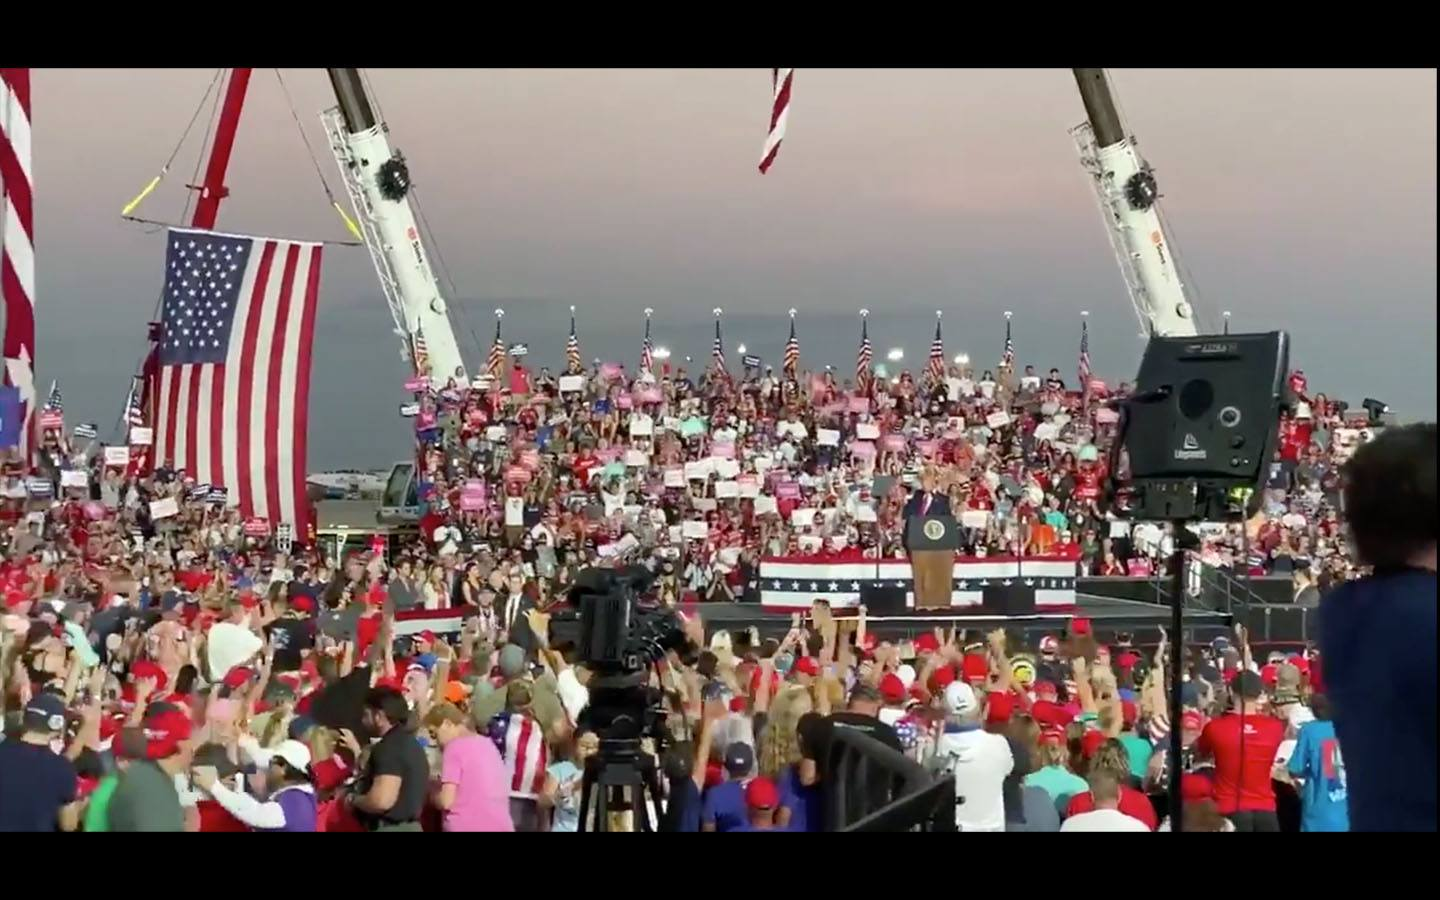 [VIDEO] Trump's First Post COVID Rally Makes Liberal Heads Explode